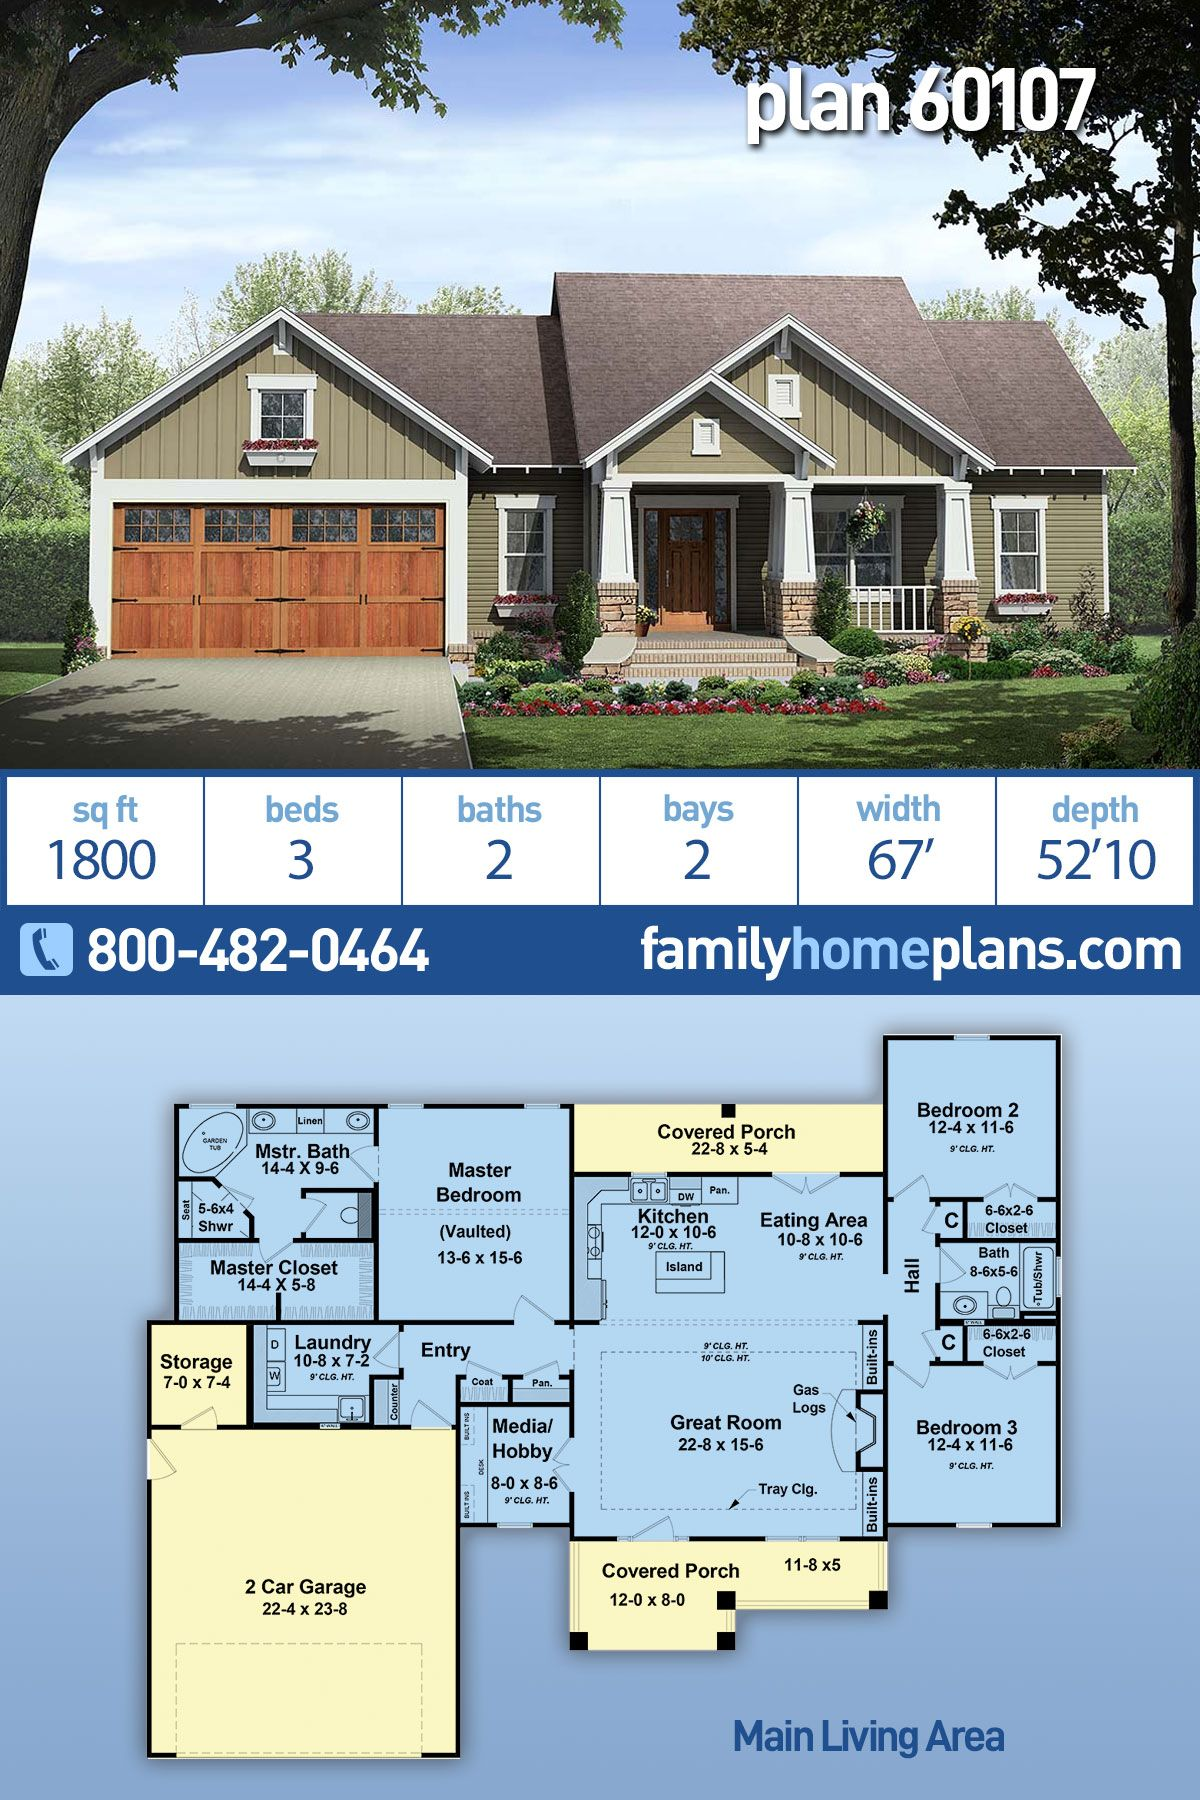 Craftsman Style House Plan 60107 With 3 Bed 2 Bath 2 Car Garage Craftsman Style House Plans Craftsman House Plans New House Plans